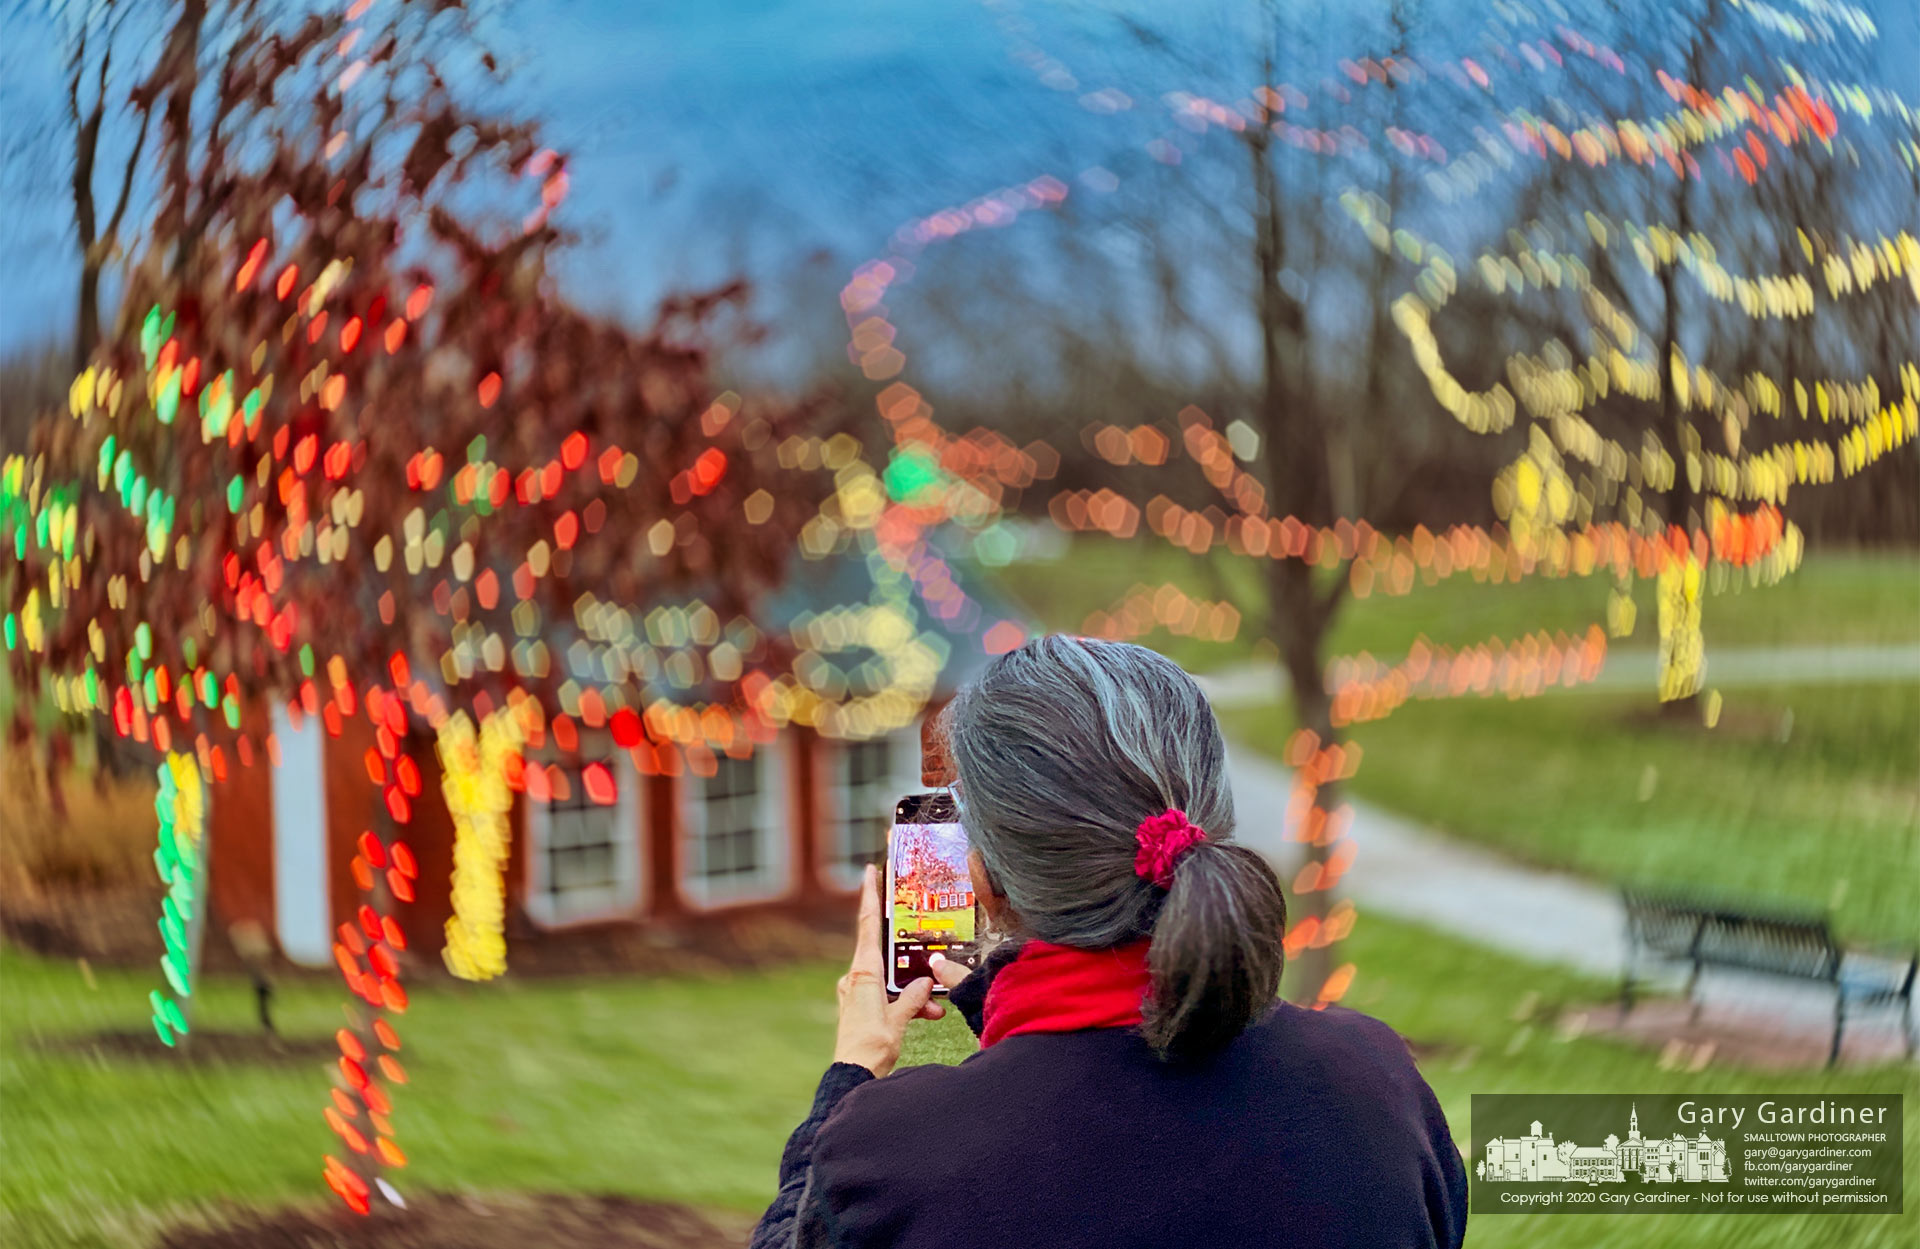 A woman pauses to photograph trees festooned with colored lights as part of the Christmas season decorations at Heritage Park in Westerville. My Final Photo for Dec. 8, 2020.